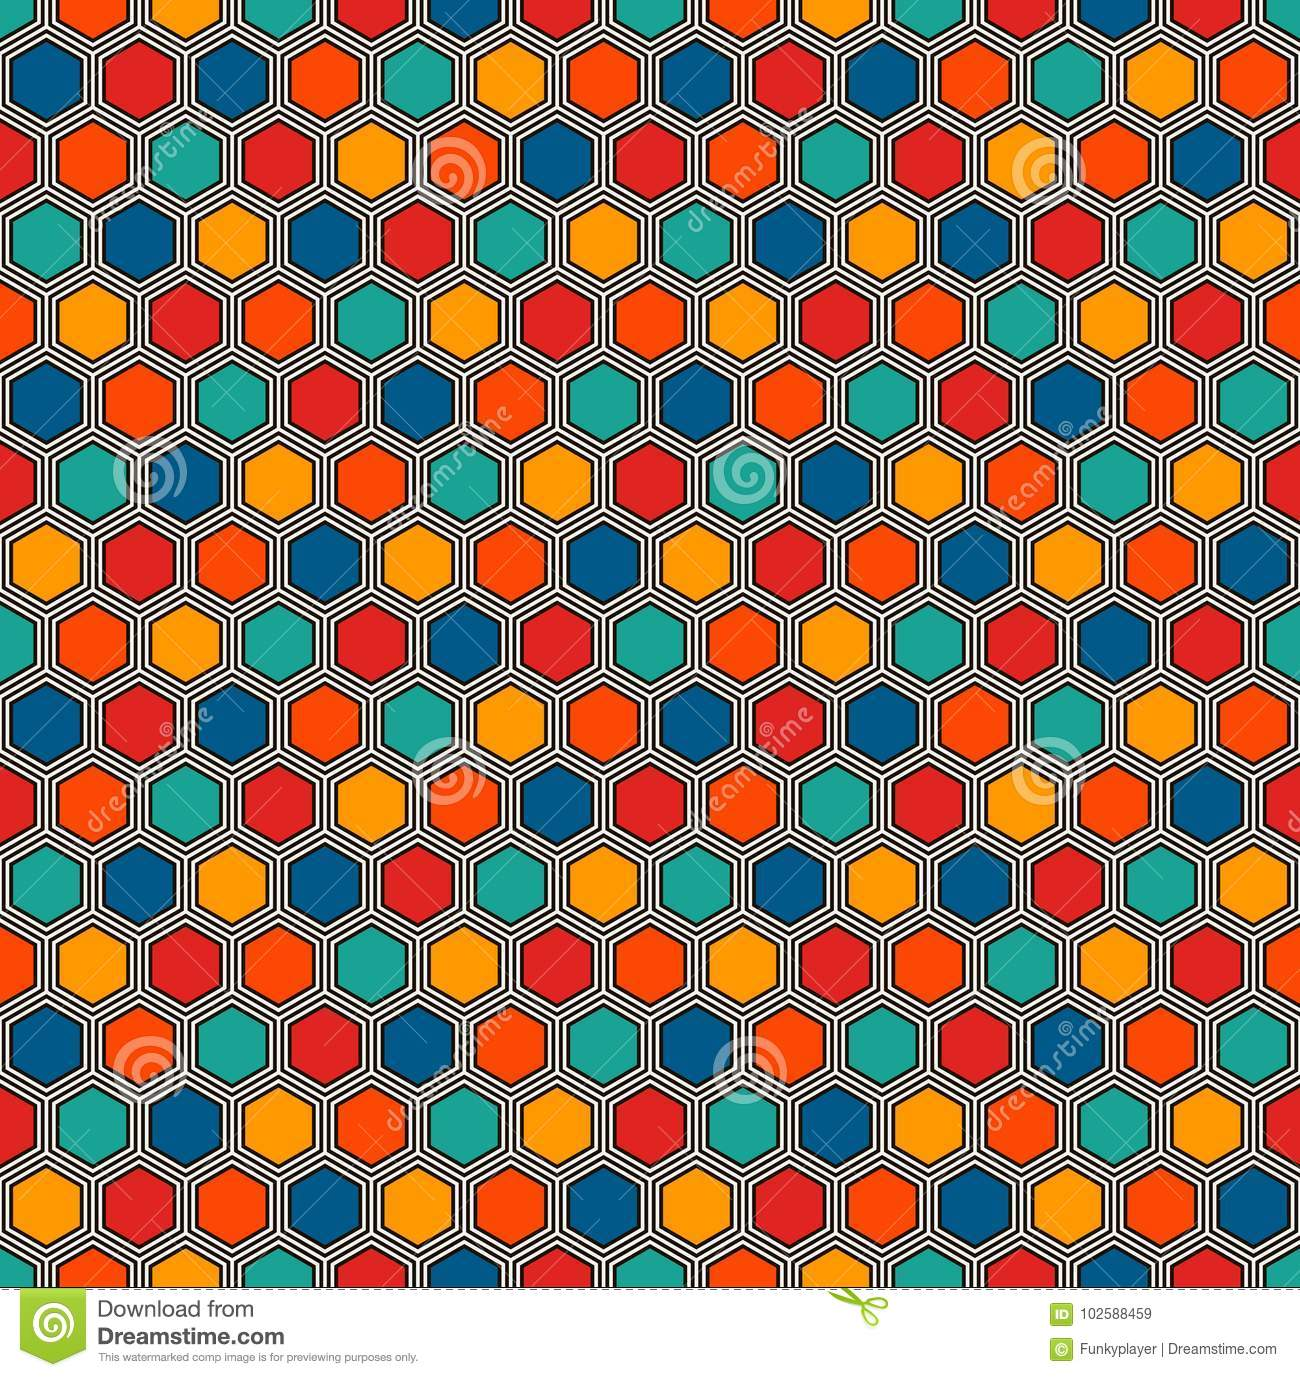 Honeycomb Abstract Background. Vivid Colors Hexagon Tiles